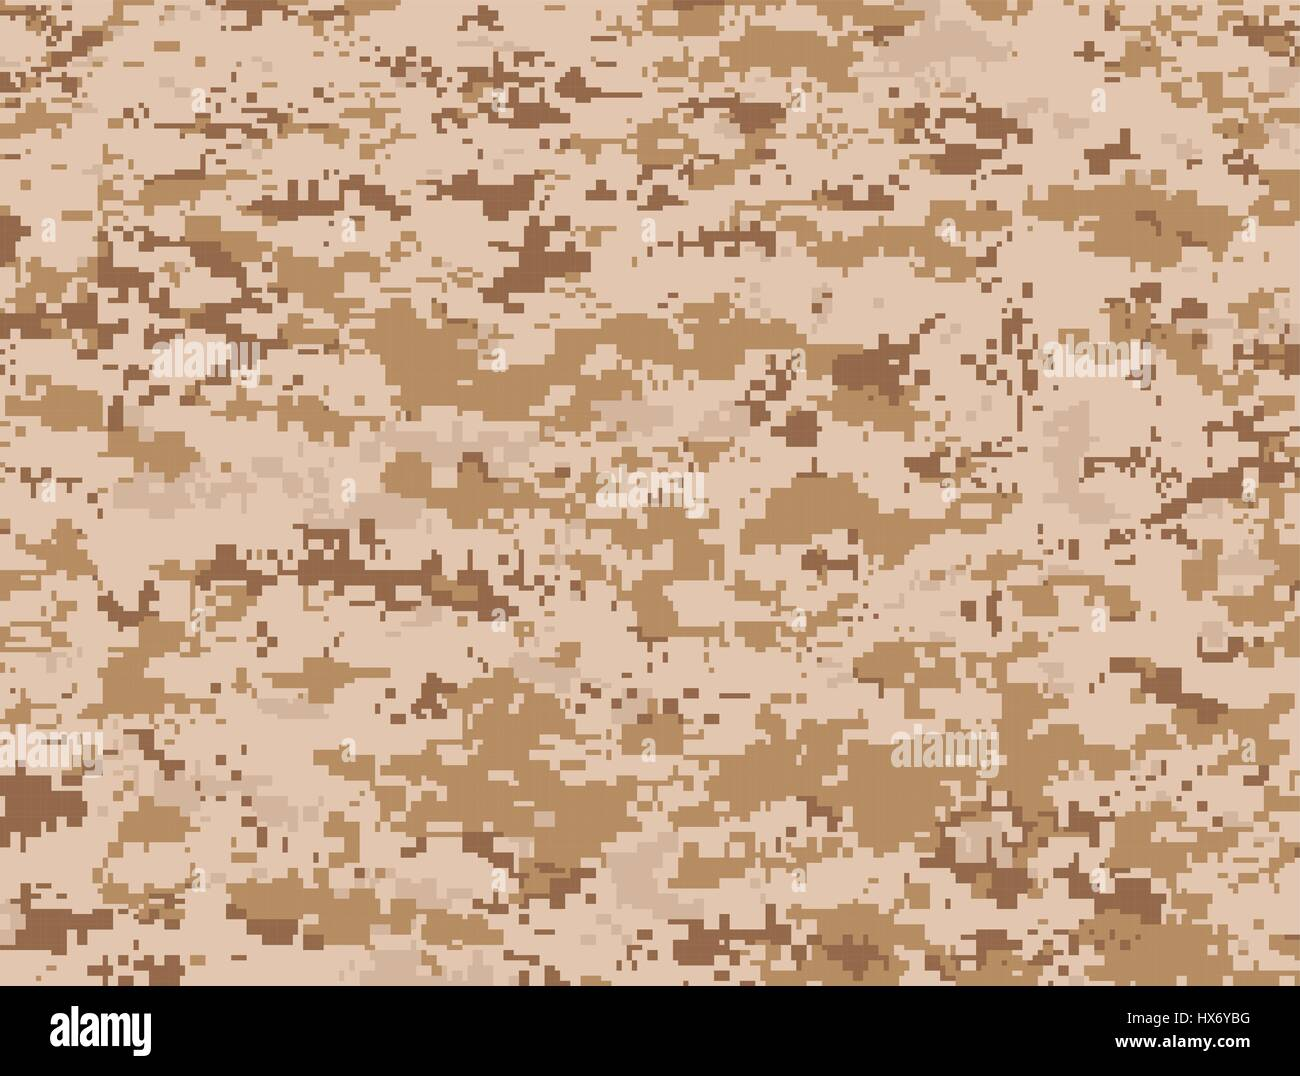 Vector texture of camel pixels camouflage for the desert - Stock Image